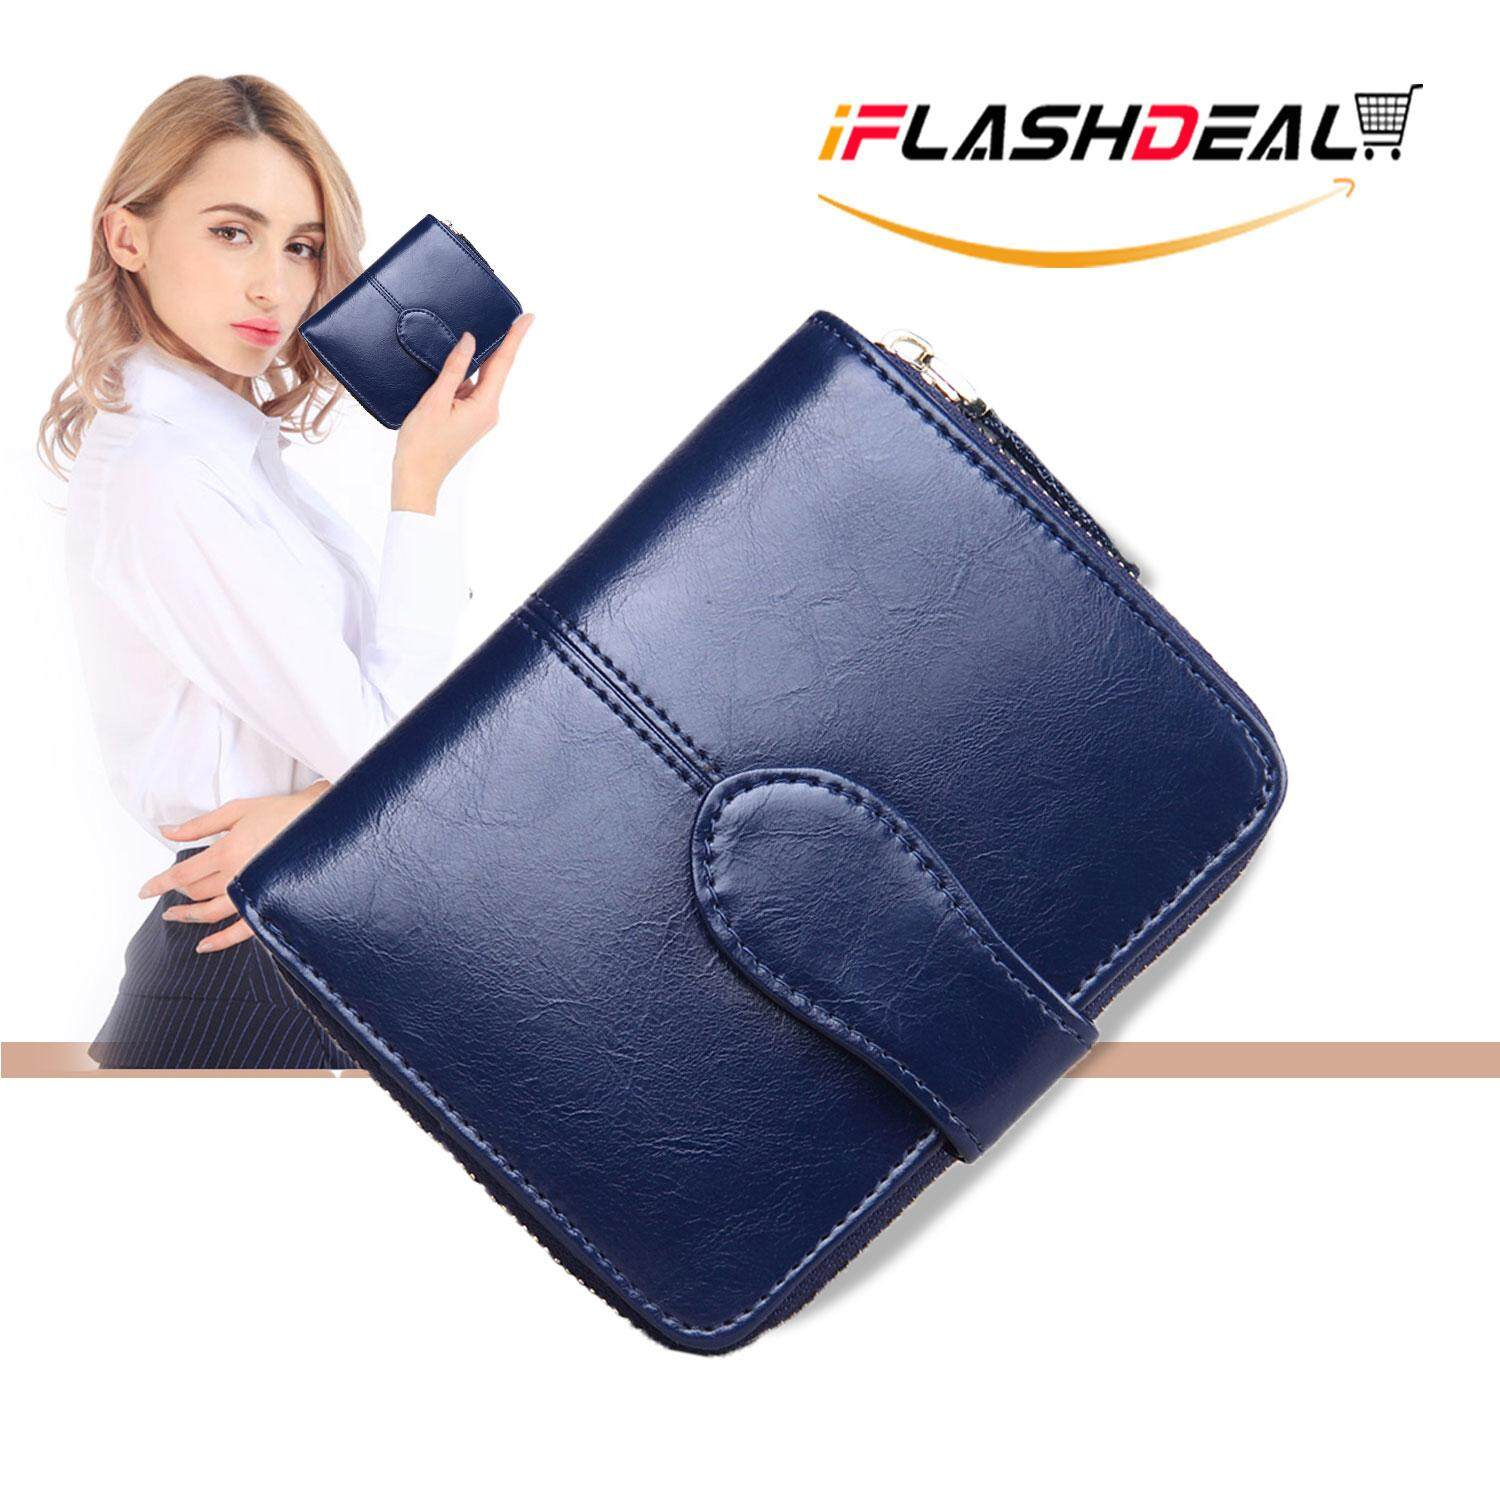 Iflashdeal Women Small Wallet Purse Card Holder Pu Leather Sling Mini Ladies Wallet Coin Pocket Zipper Clutch By Iflashdeal.